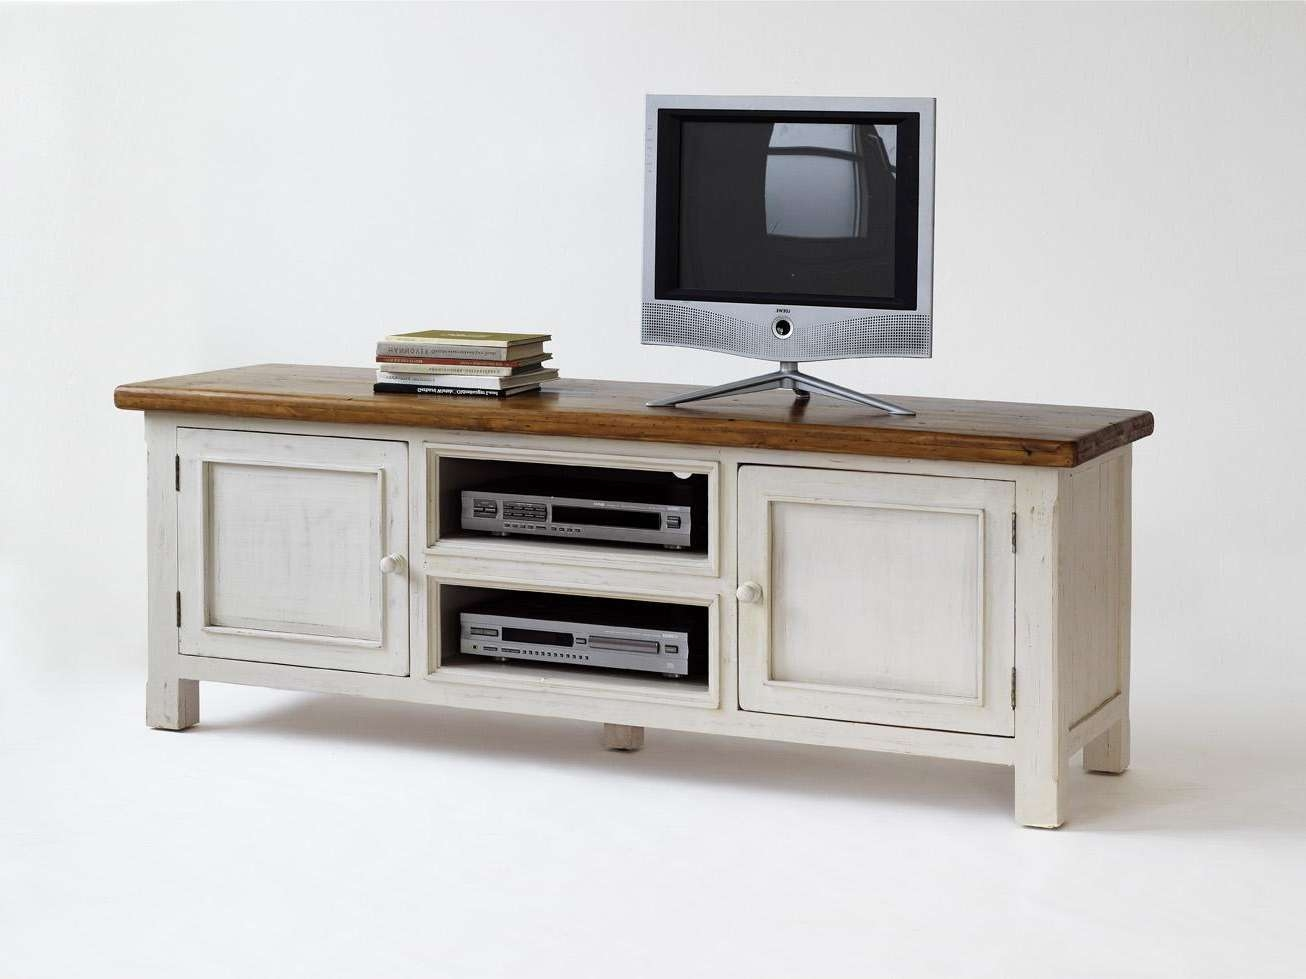 Incredible Decoration White Wood Furniture Nice Design Ideas Regarding White And Wood Tv Stands (View 7 of 15)